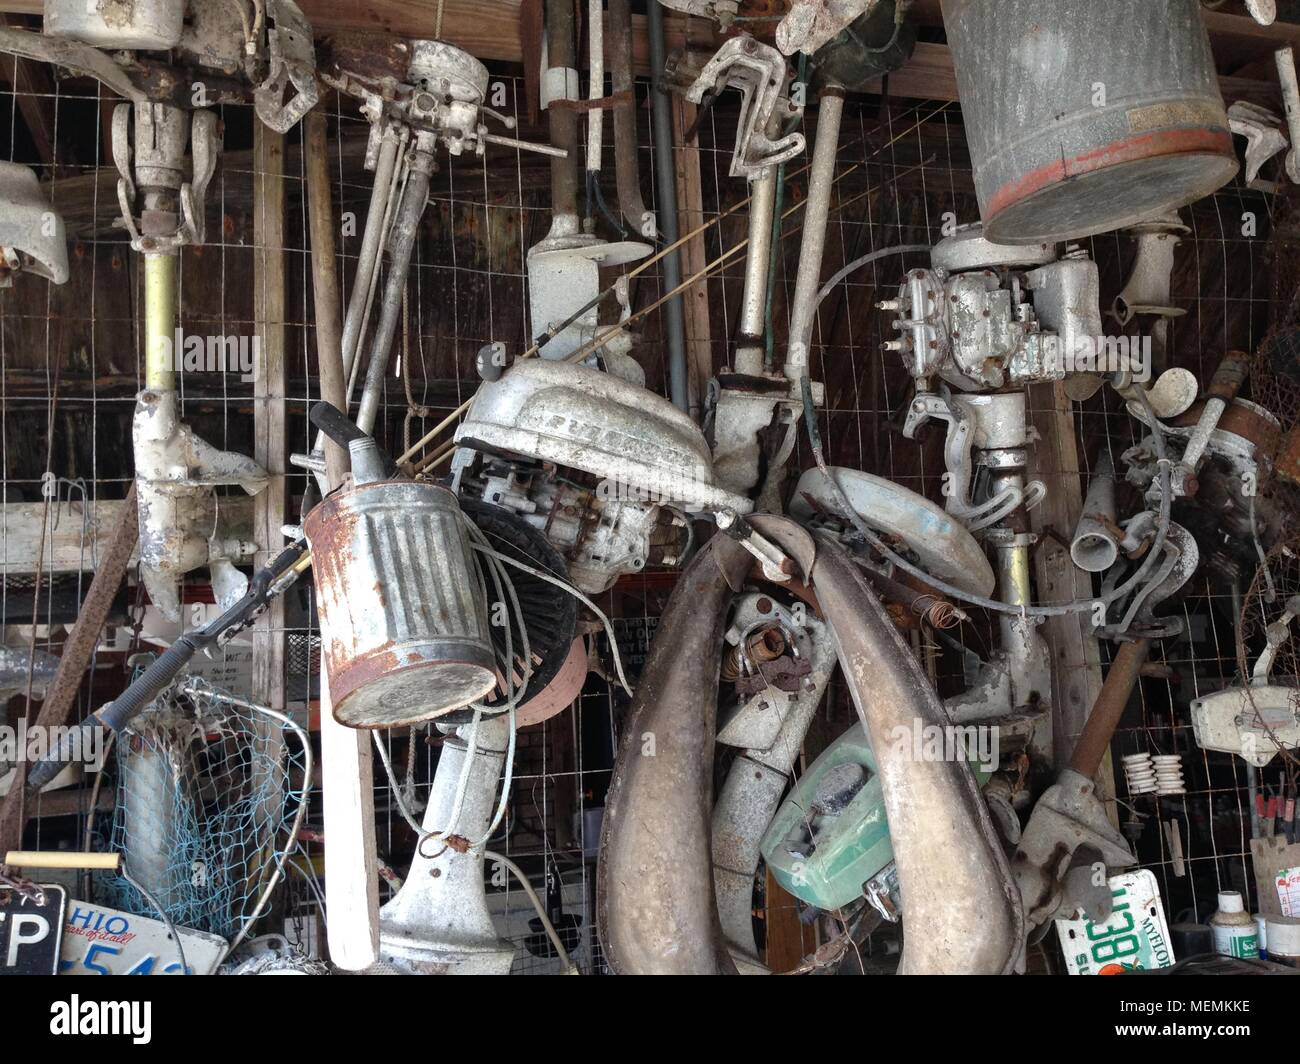 Old, vintage outboard motors hanging from the ceiling of a back country fishing camp in Florida - Stock Image